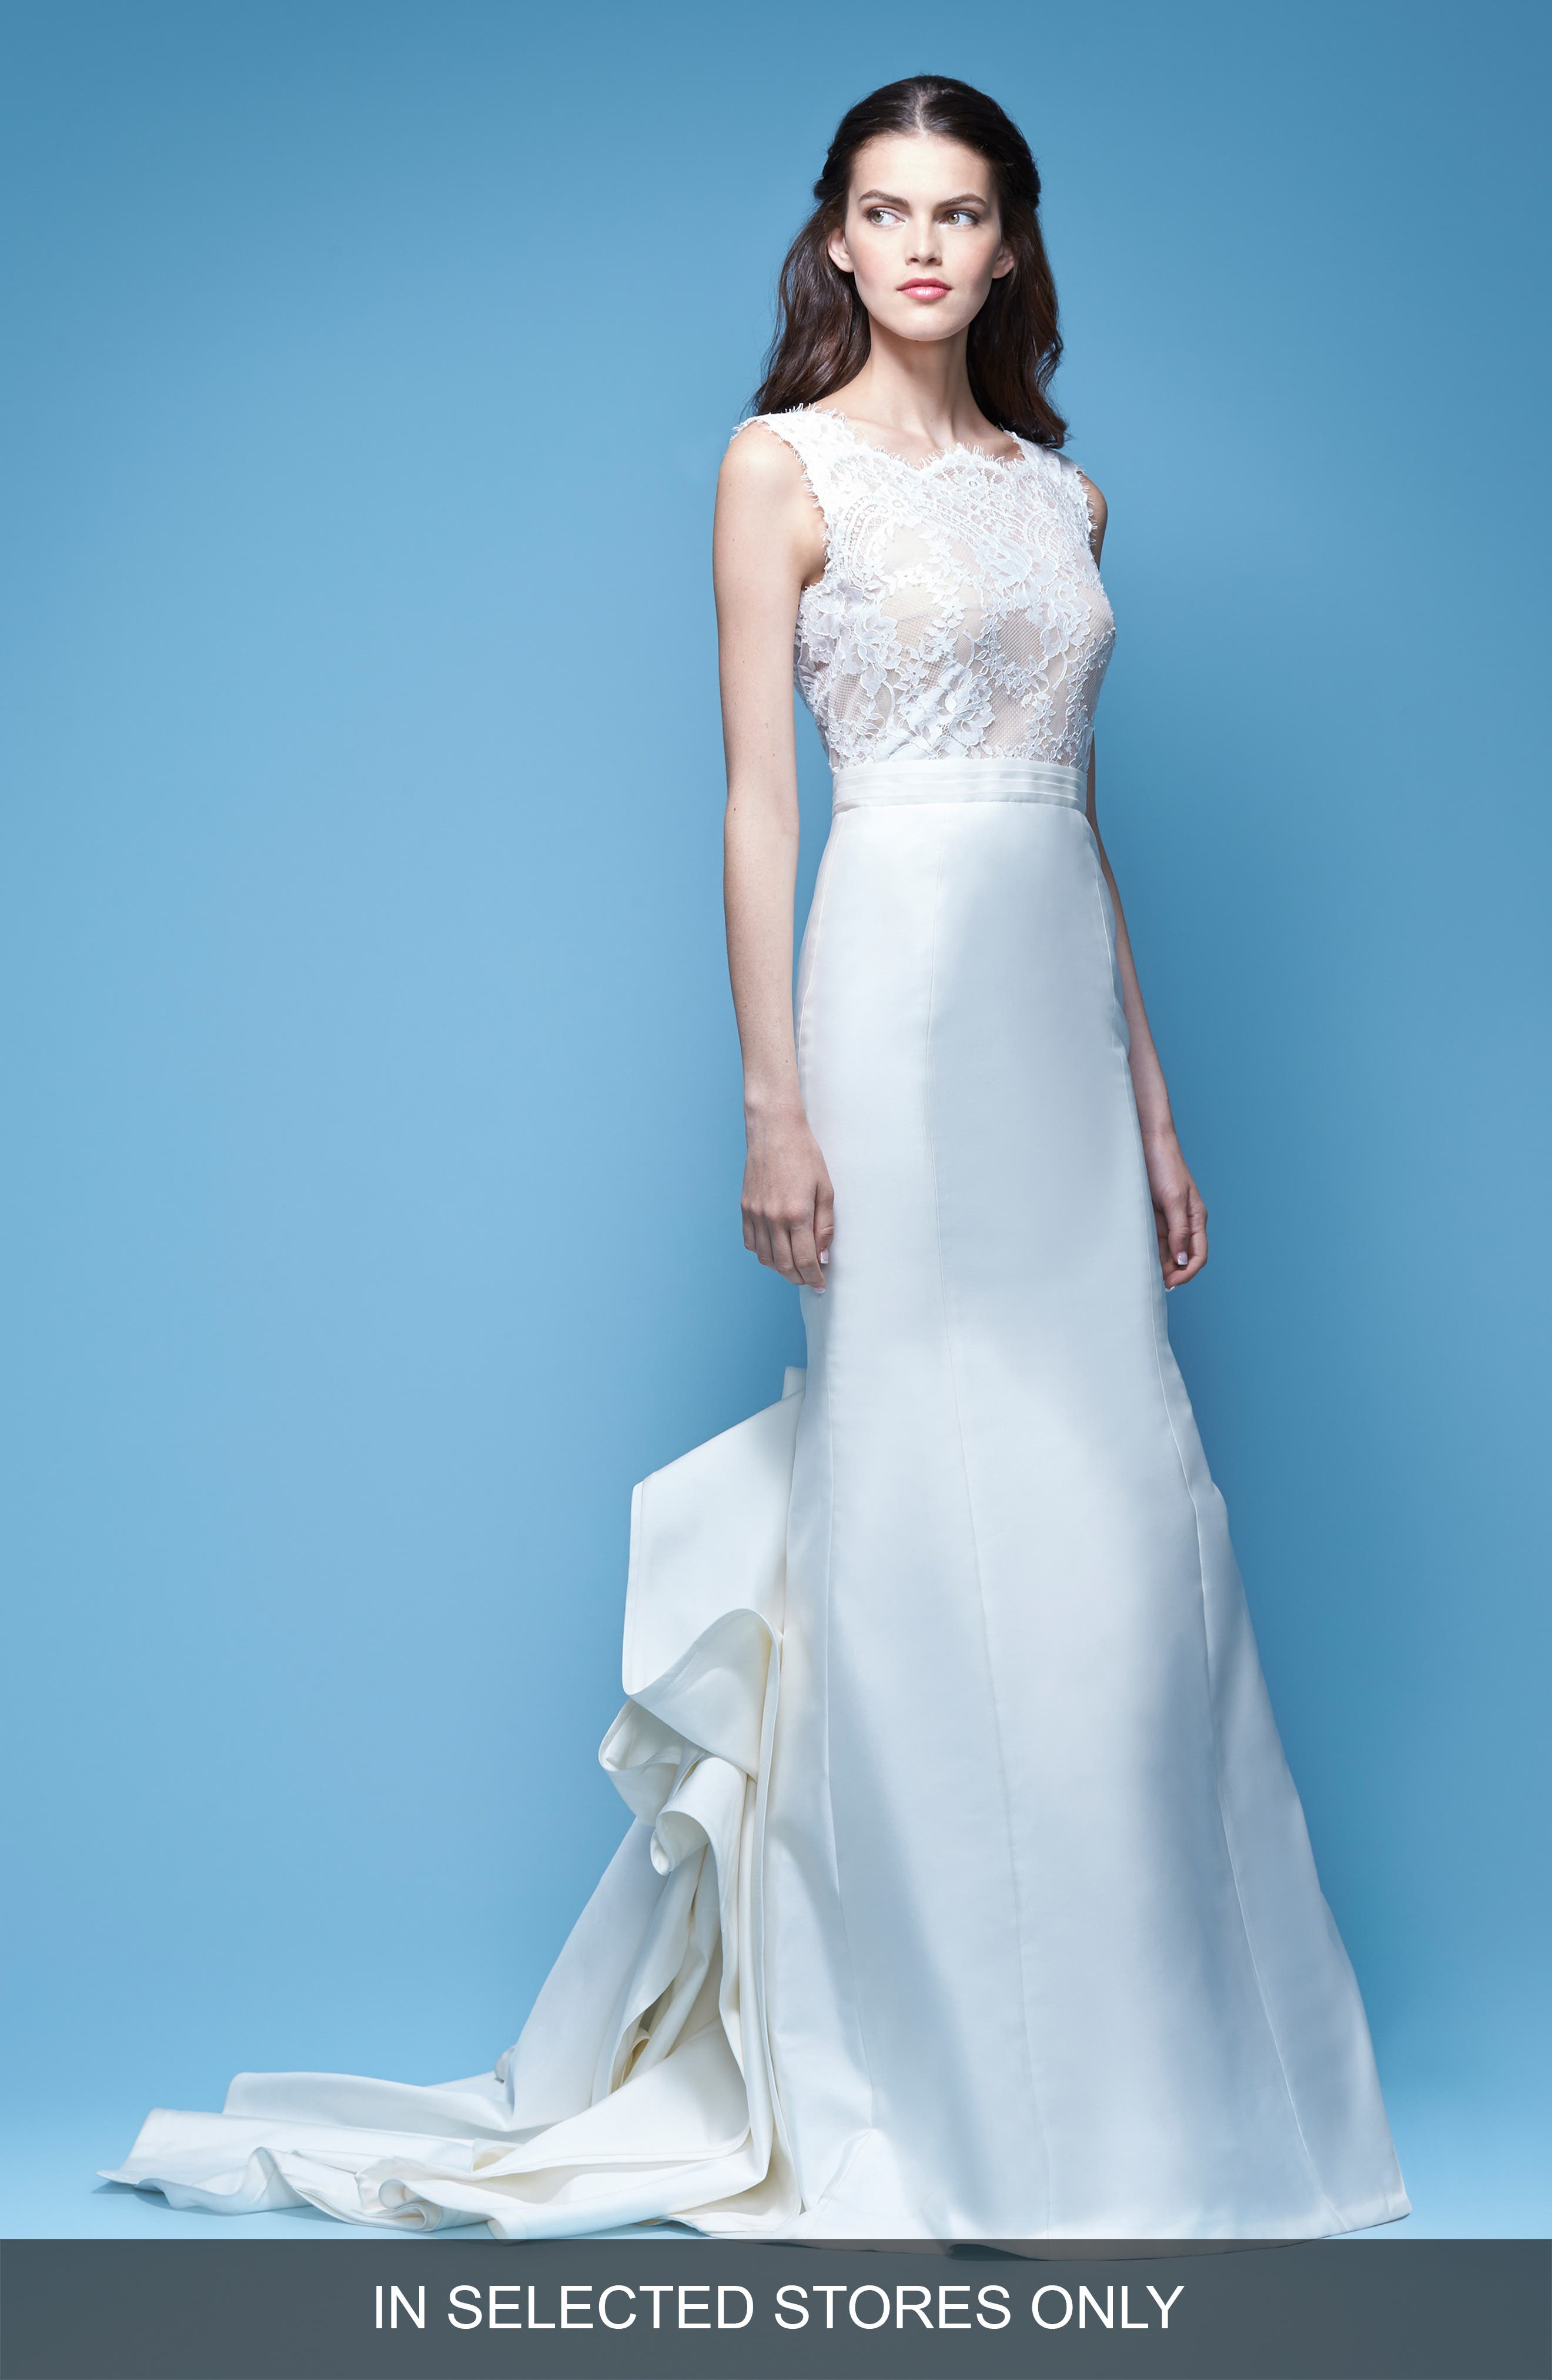 Carolina Herrera Josette Sleeveless Lace & Mikado Mermaid Gown with Origami Fold Train (In Selected Stores Only)